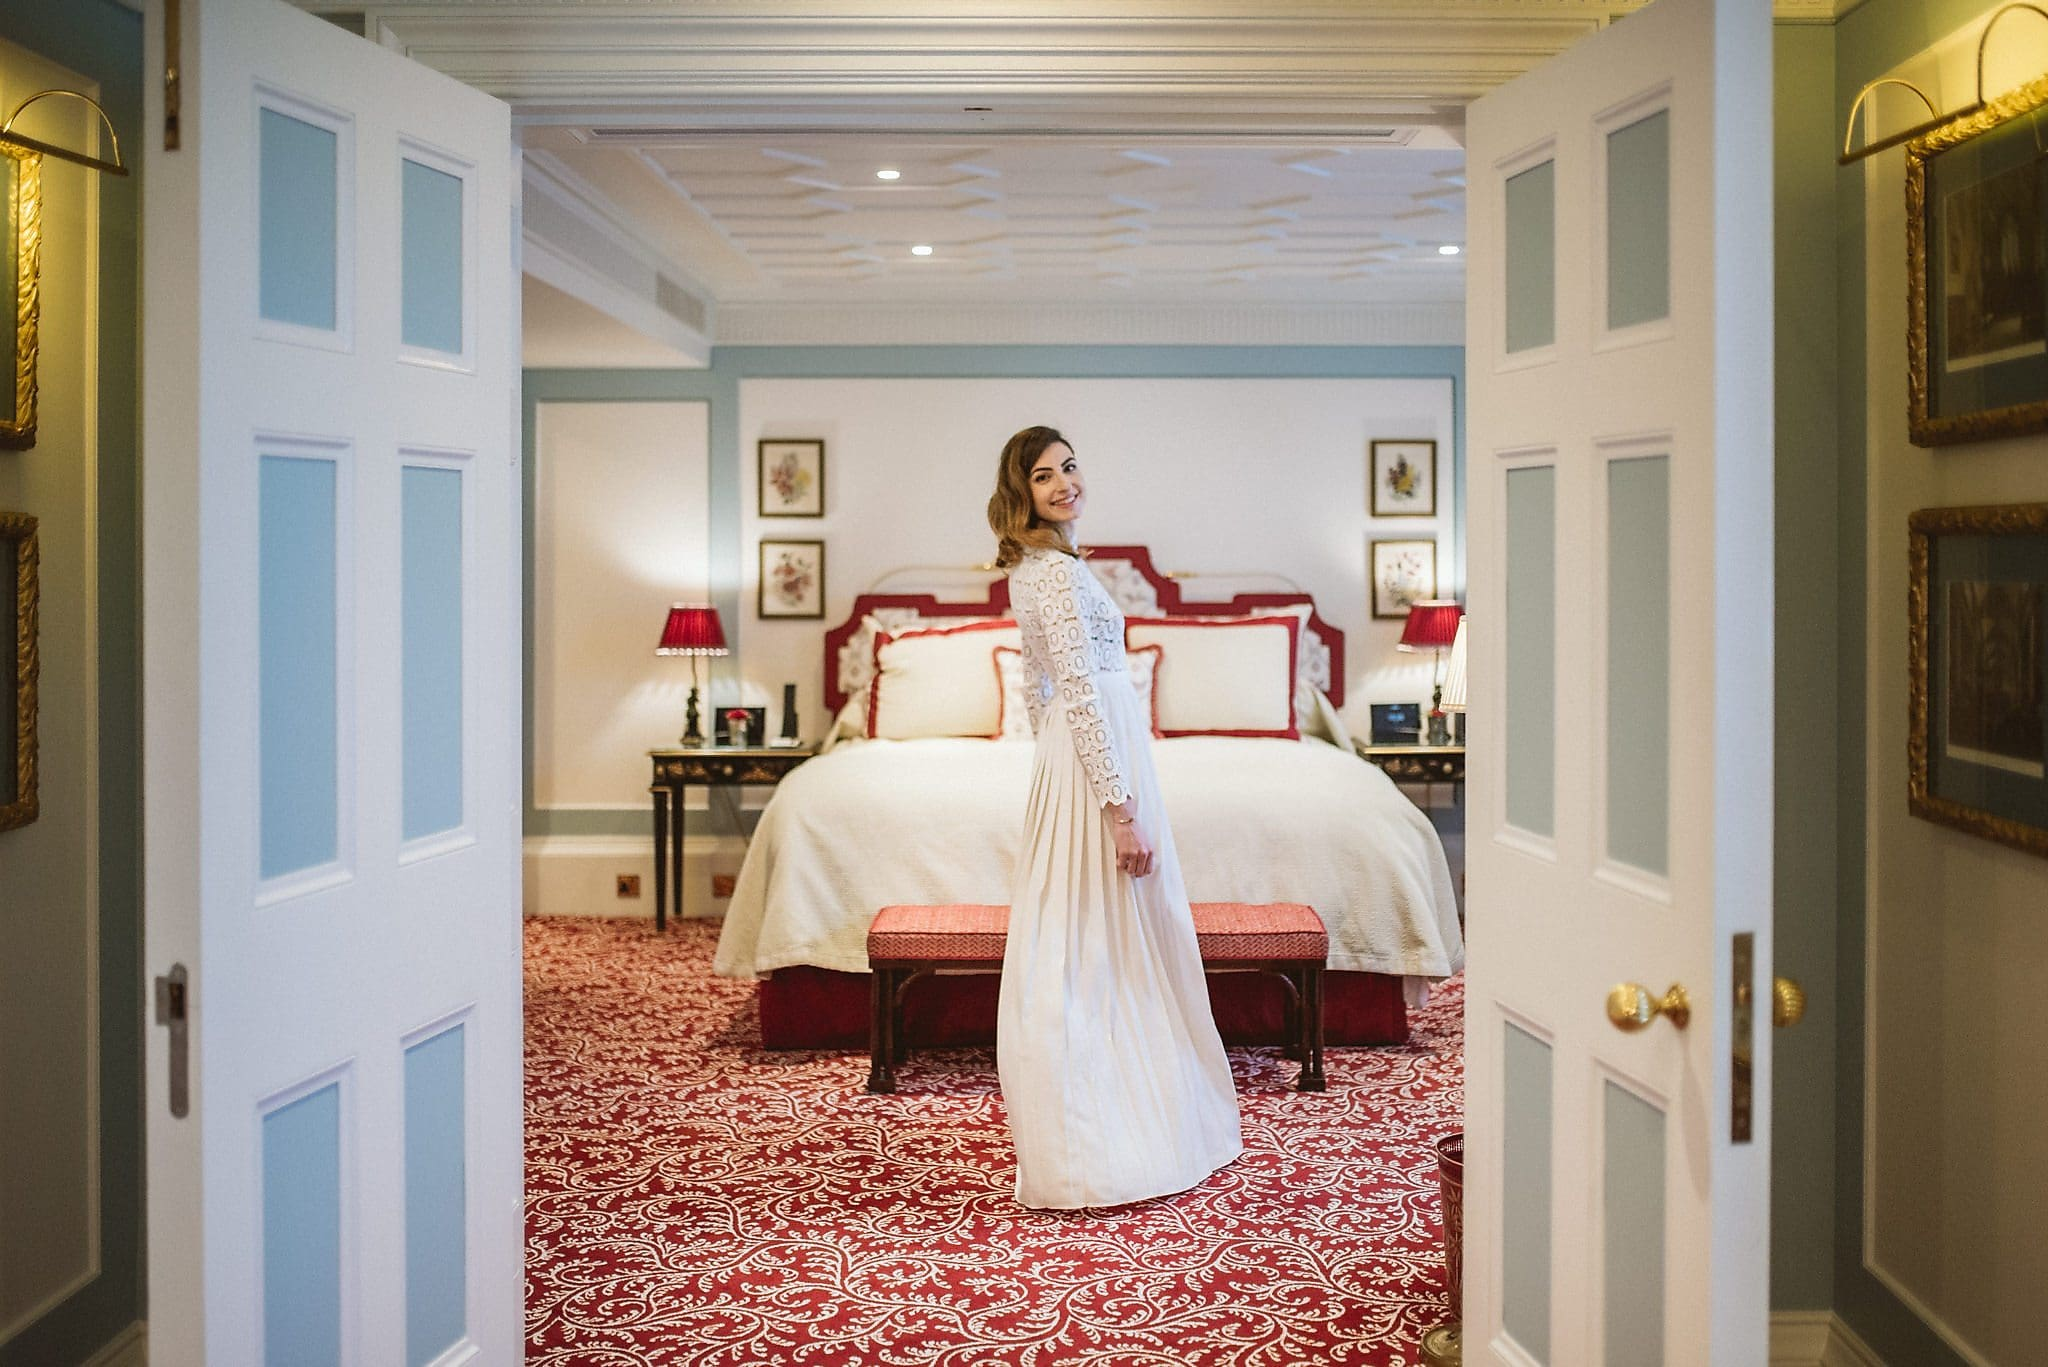 Bride in wedding dress twirls in bridal suite at her Lanesborough wedding